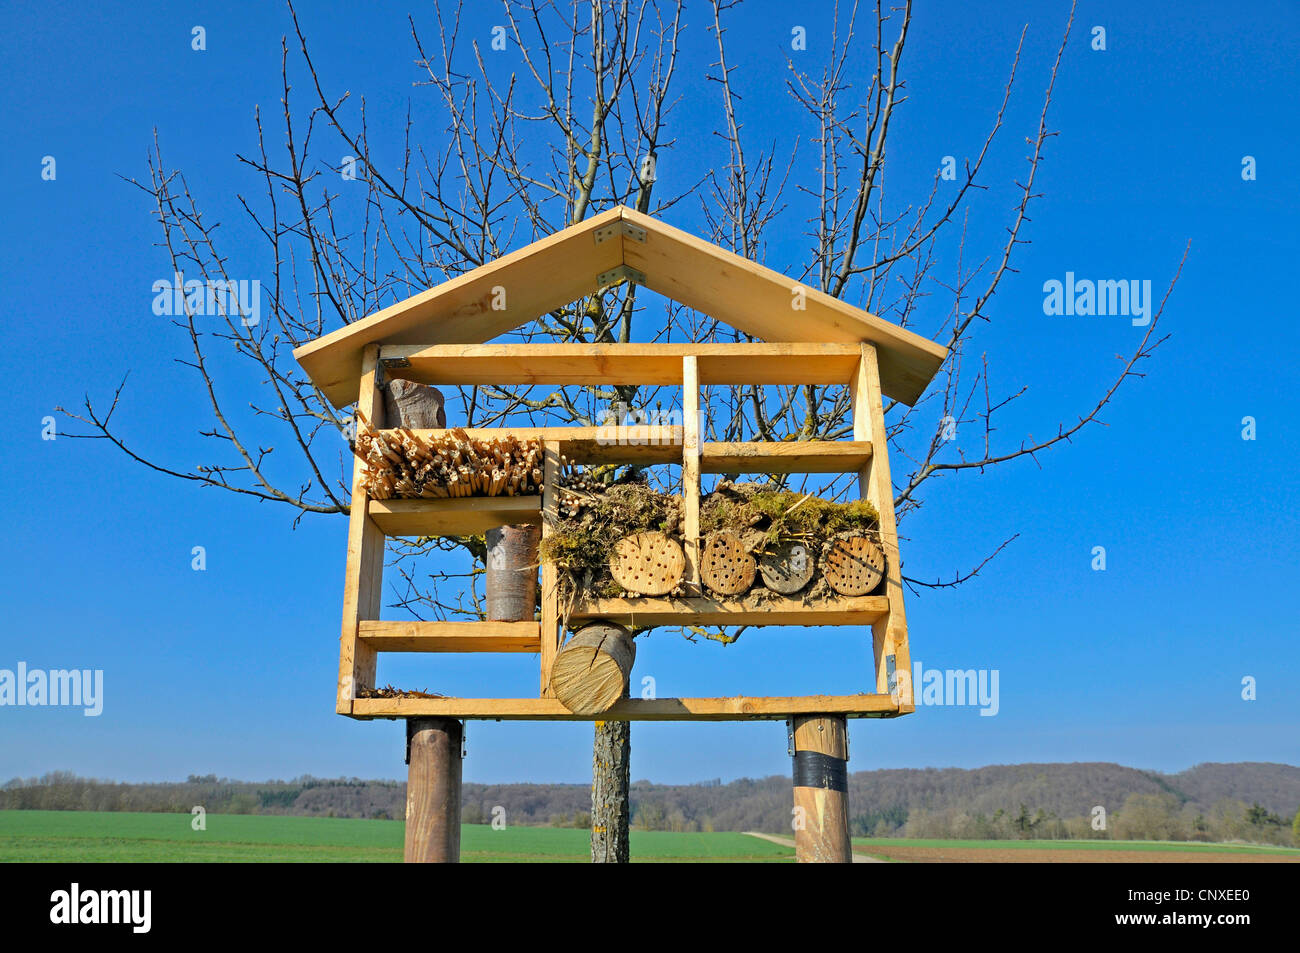 insect hotel for wild bees and other insects, Germany - Stock Image